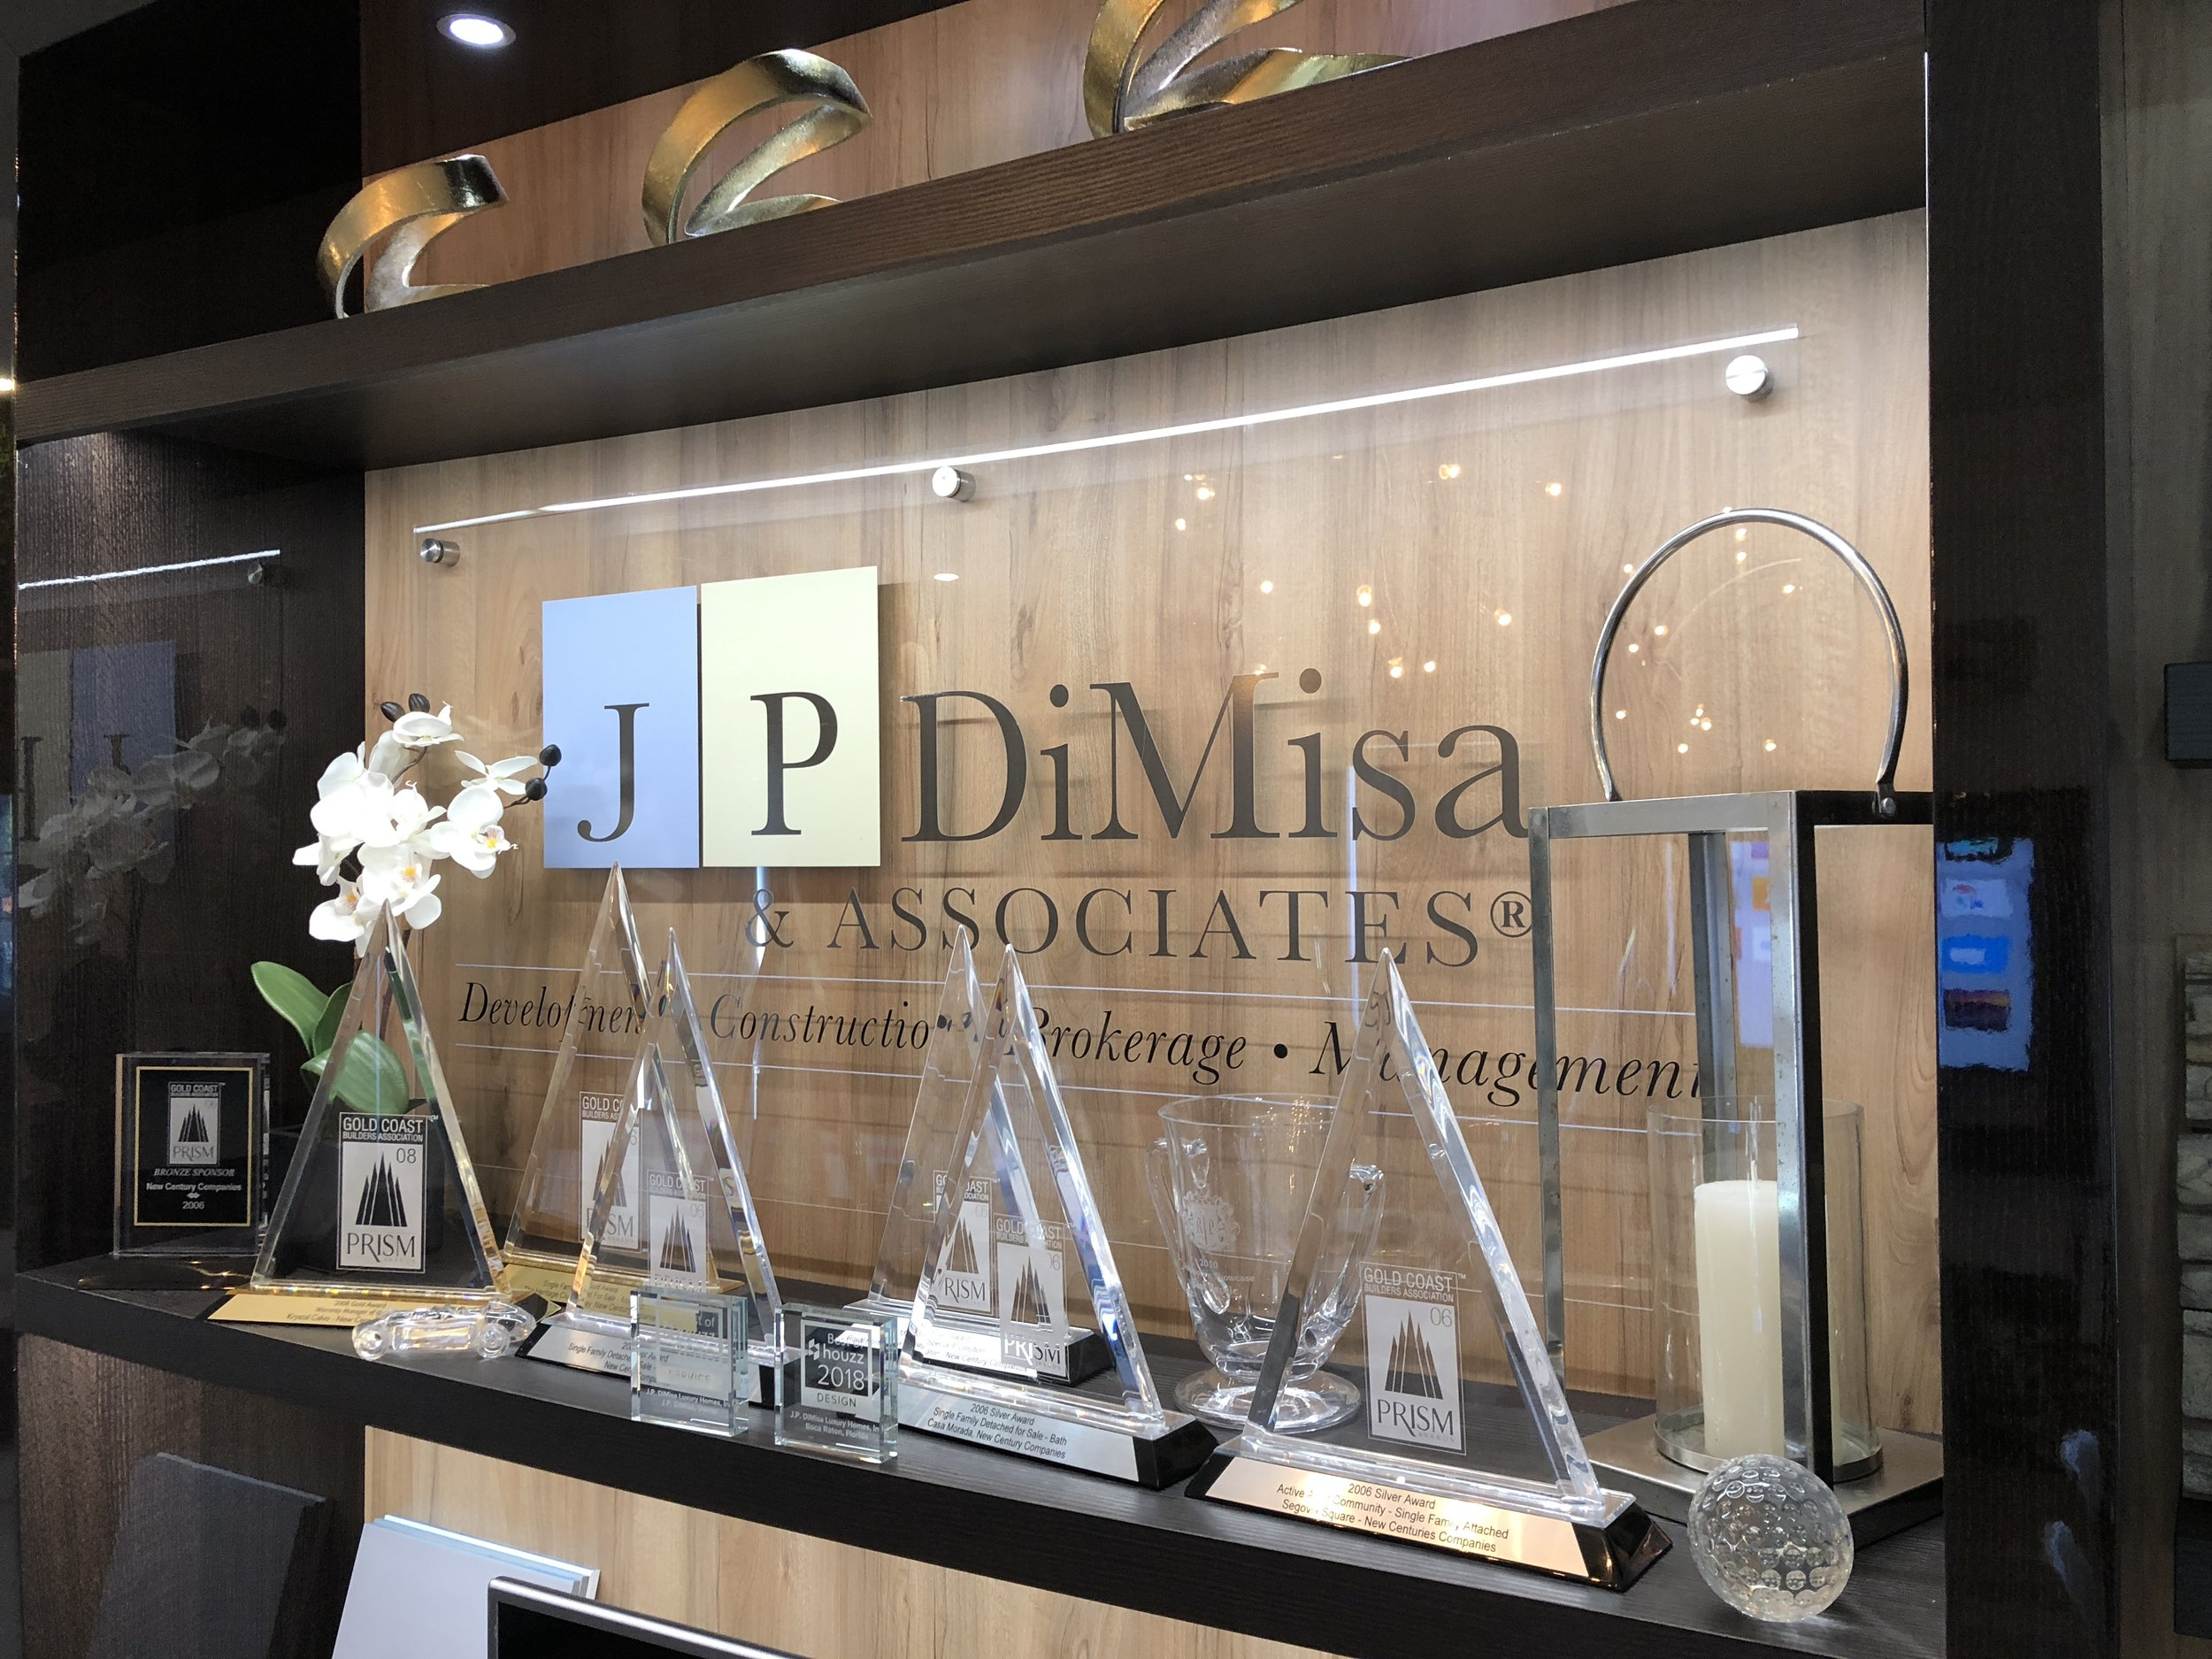 Some of our industry and community awards and recognition.